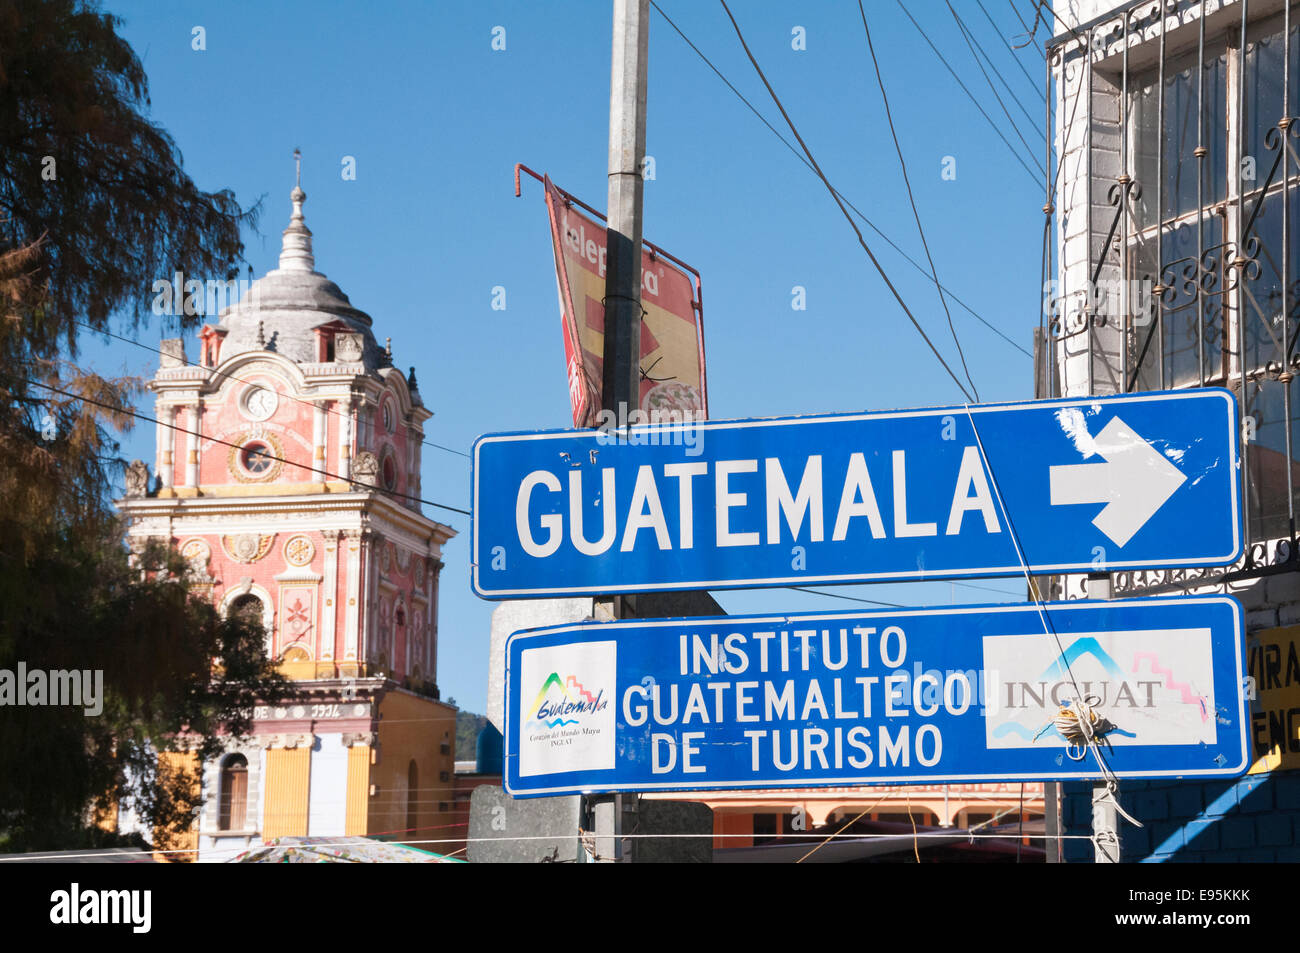 Road sign pointing to Guatemala City, with the City Hall Clock Tower behind, Solola, Guatemala - Stock Image